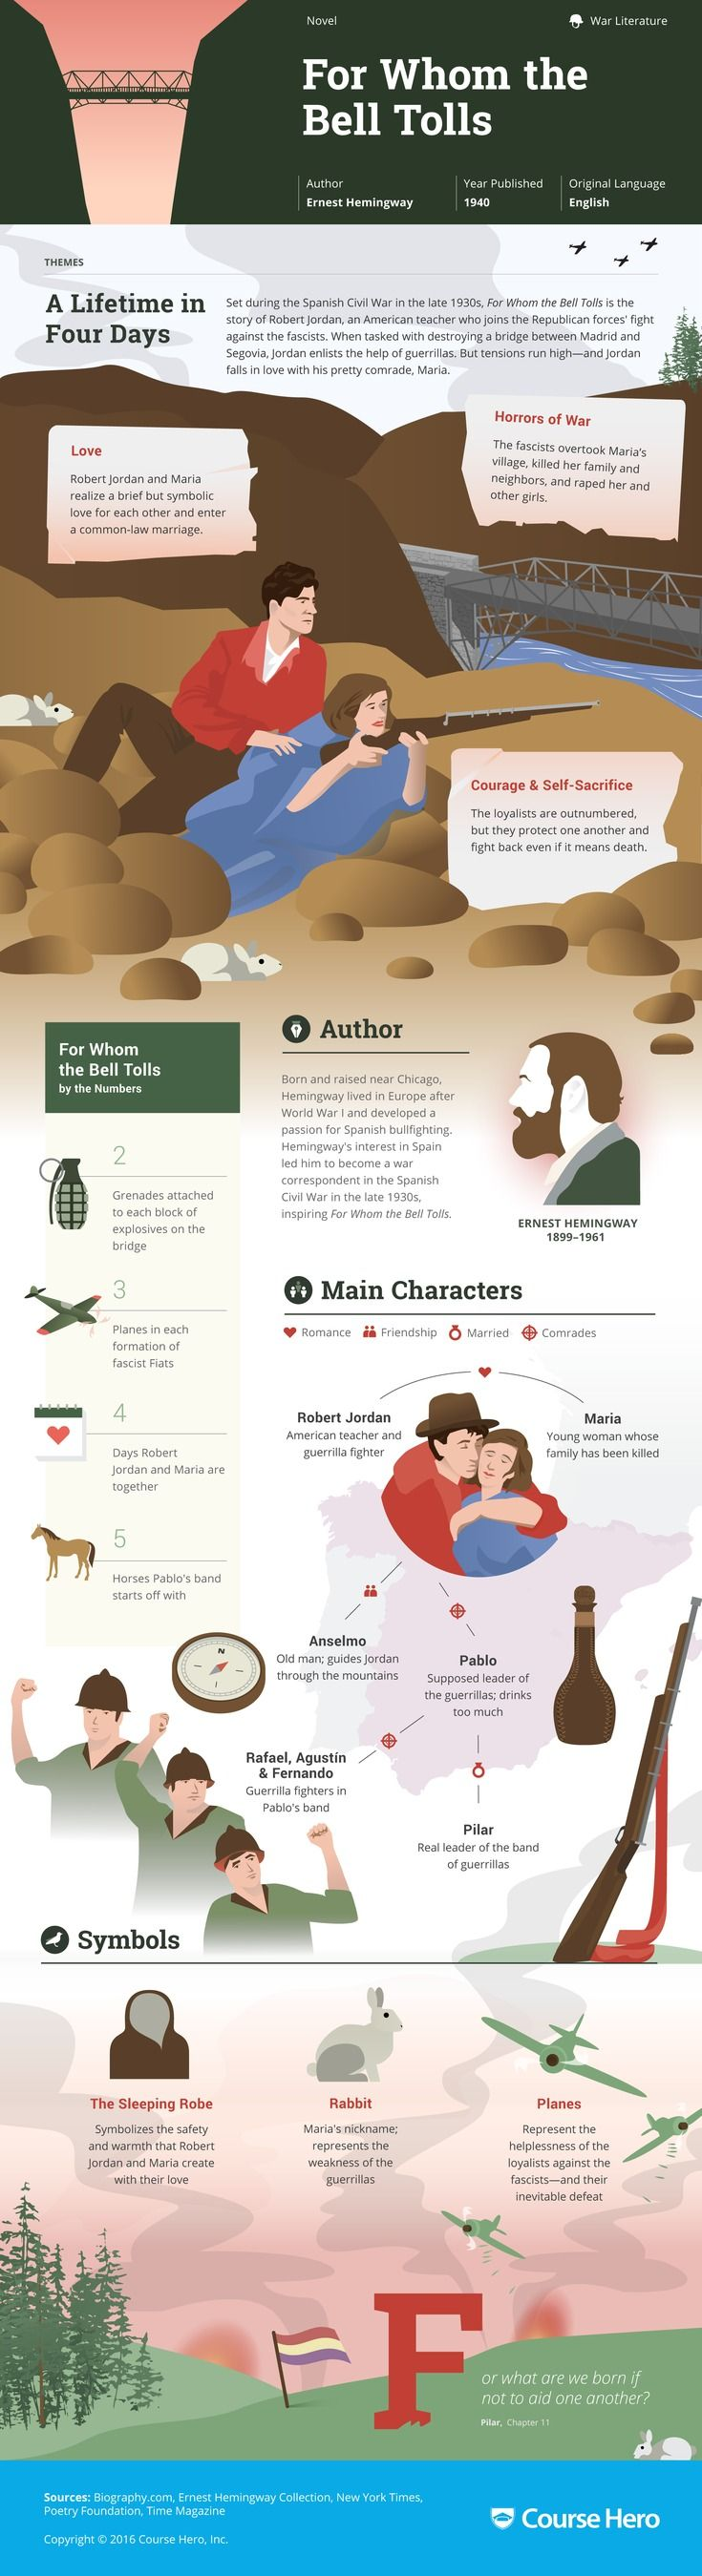 For Whom the Bell Tolls Infographic   Course Hero